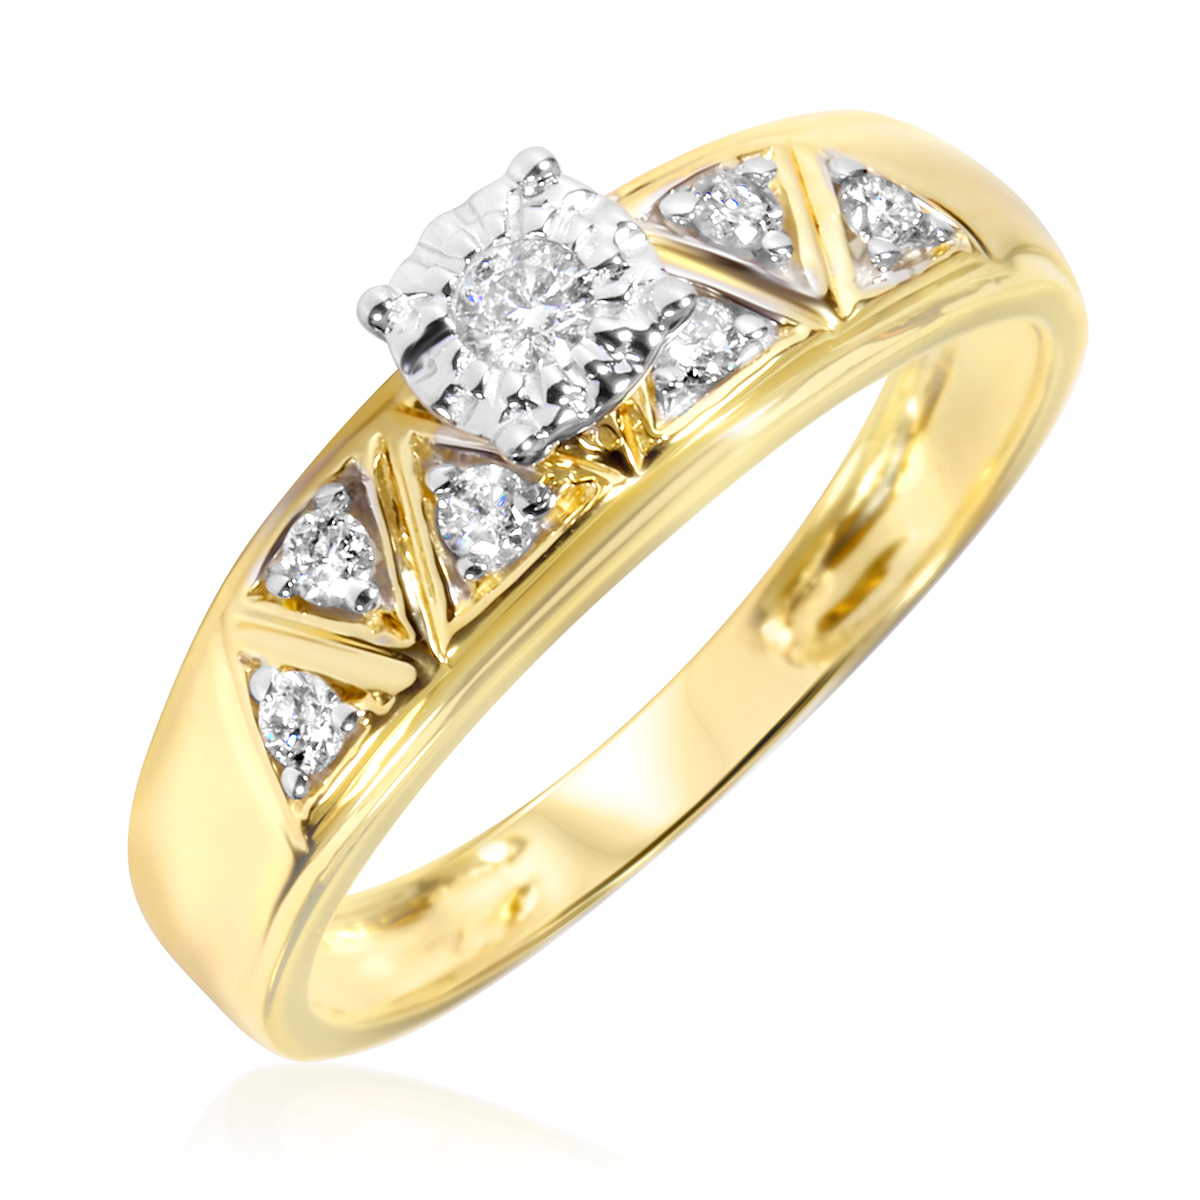 1/5 Carat T.W. Diamond Women's Engagement Ring 10K Yellow Gold